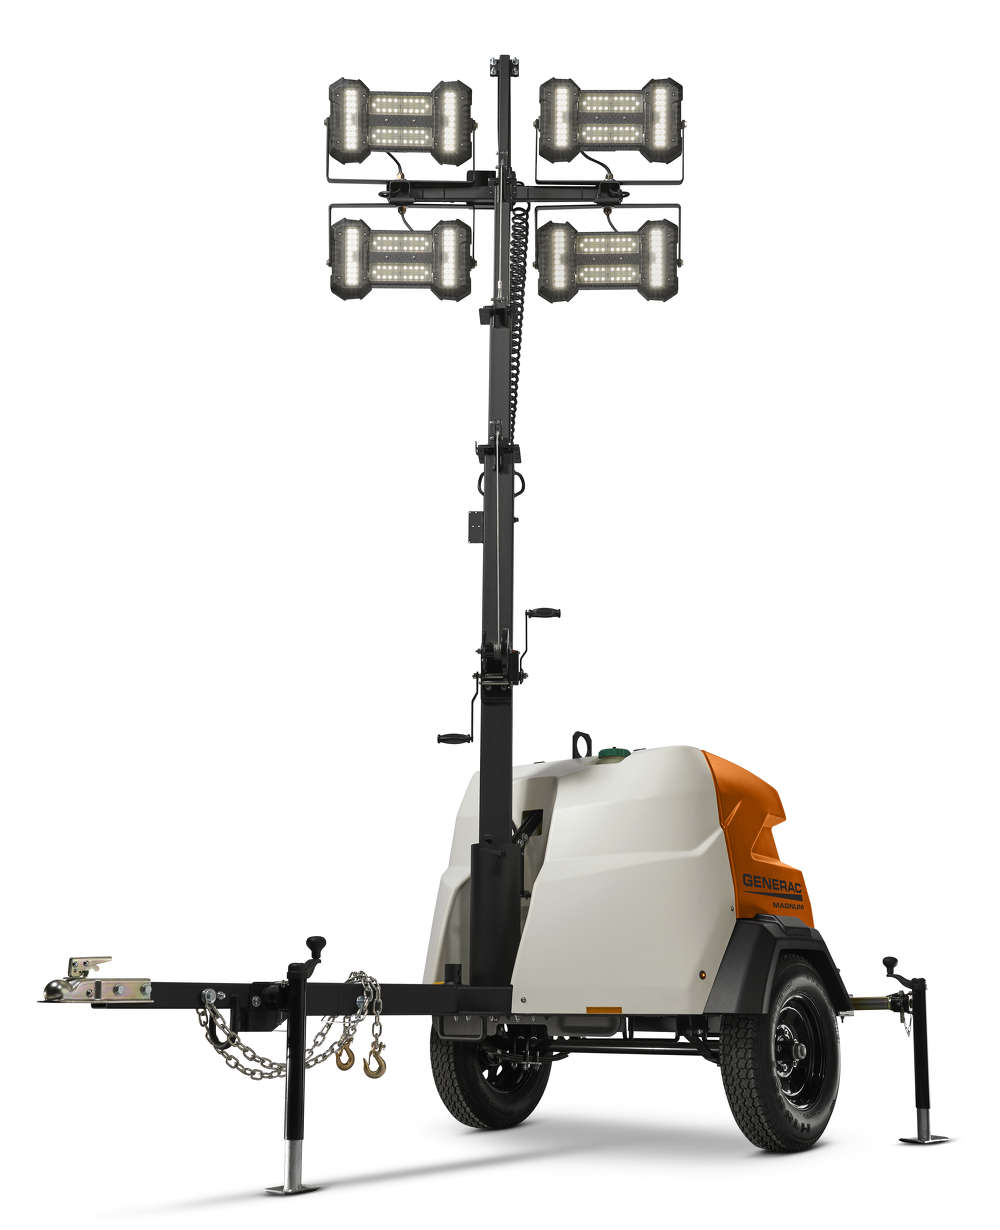 The MLT6SMD LED light tower is a 6kW unit powered by a Tier 4 ultra-fuel-efficient ECOSpeed engine that operates in multiple speeds.